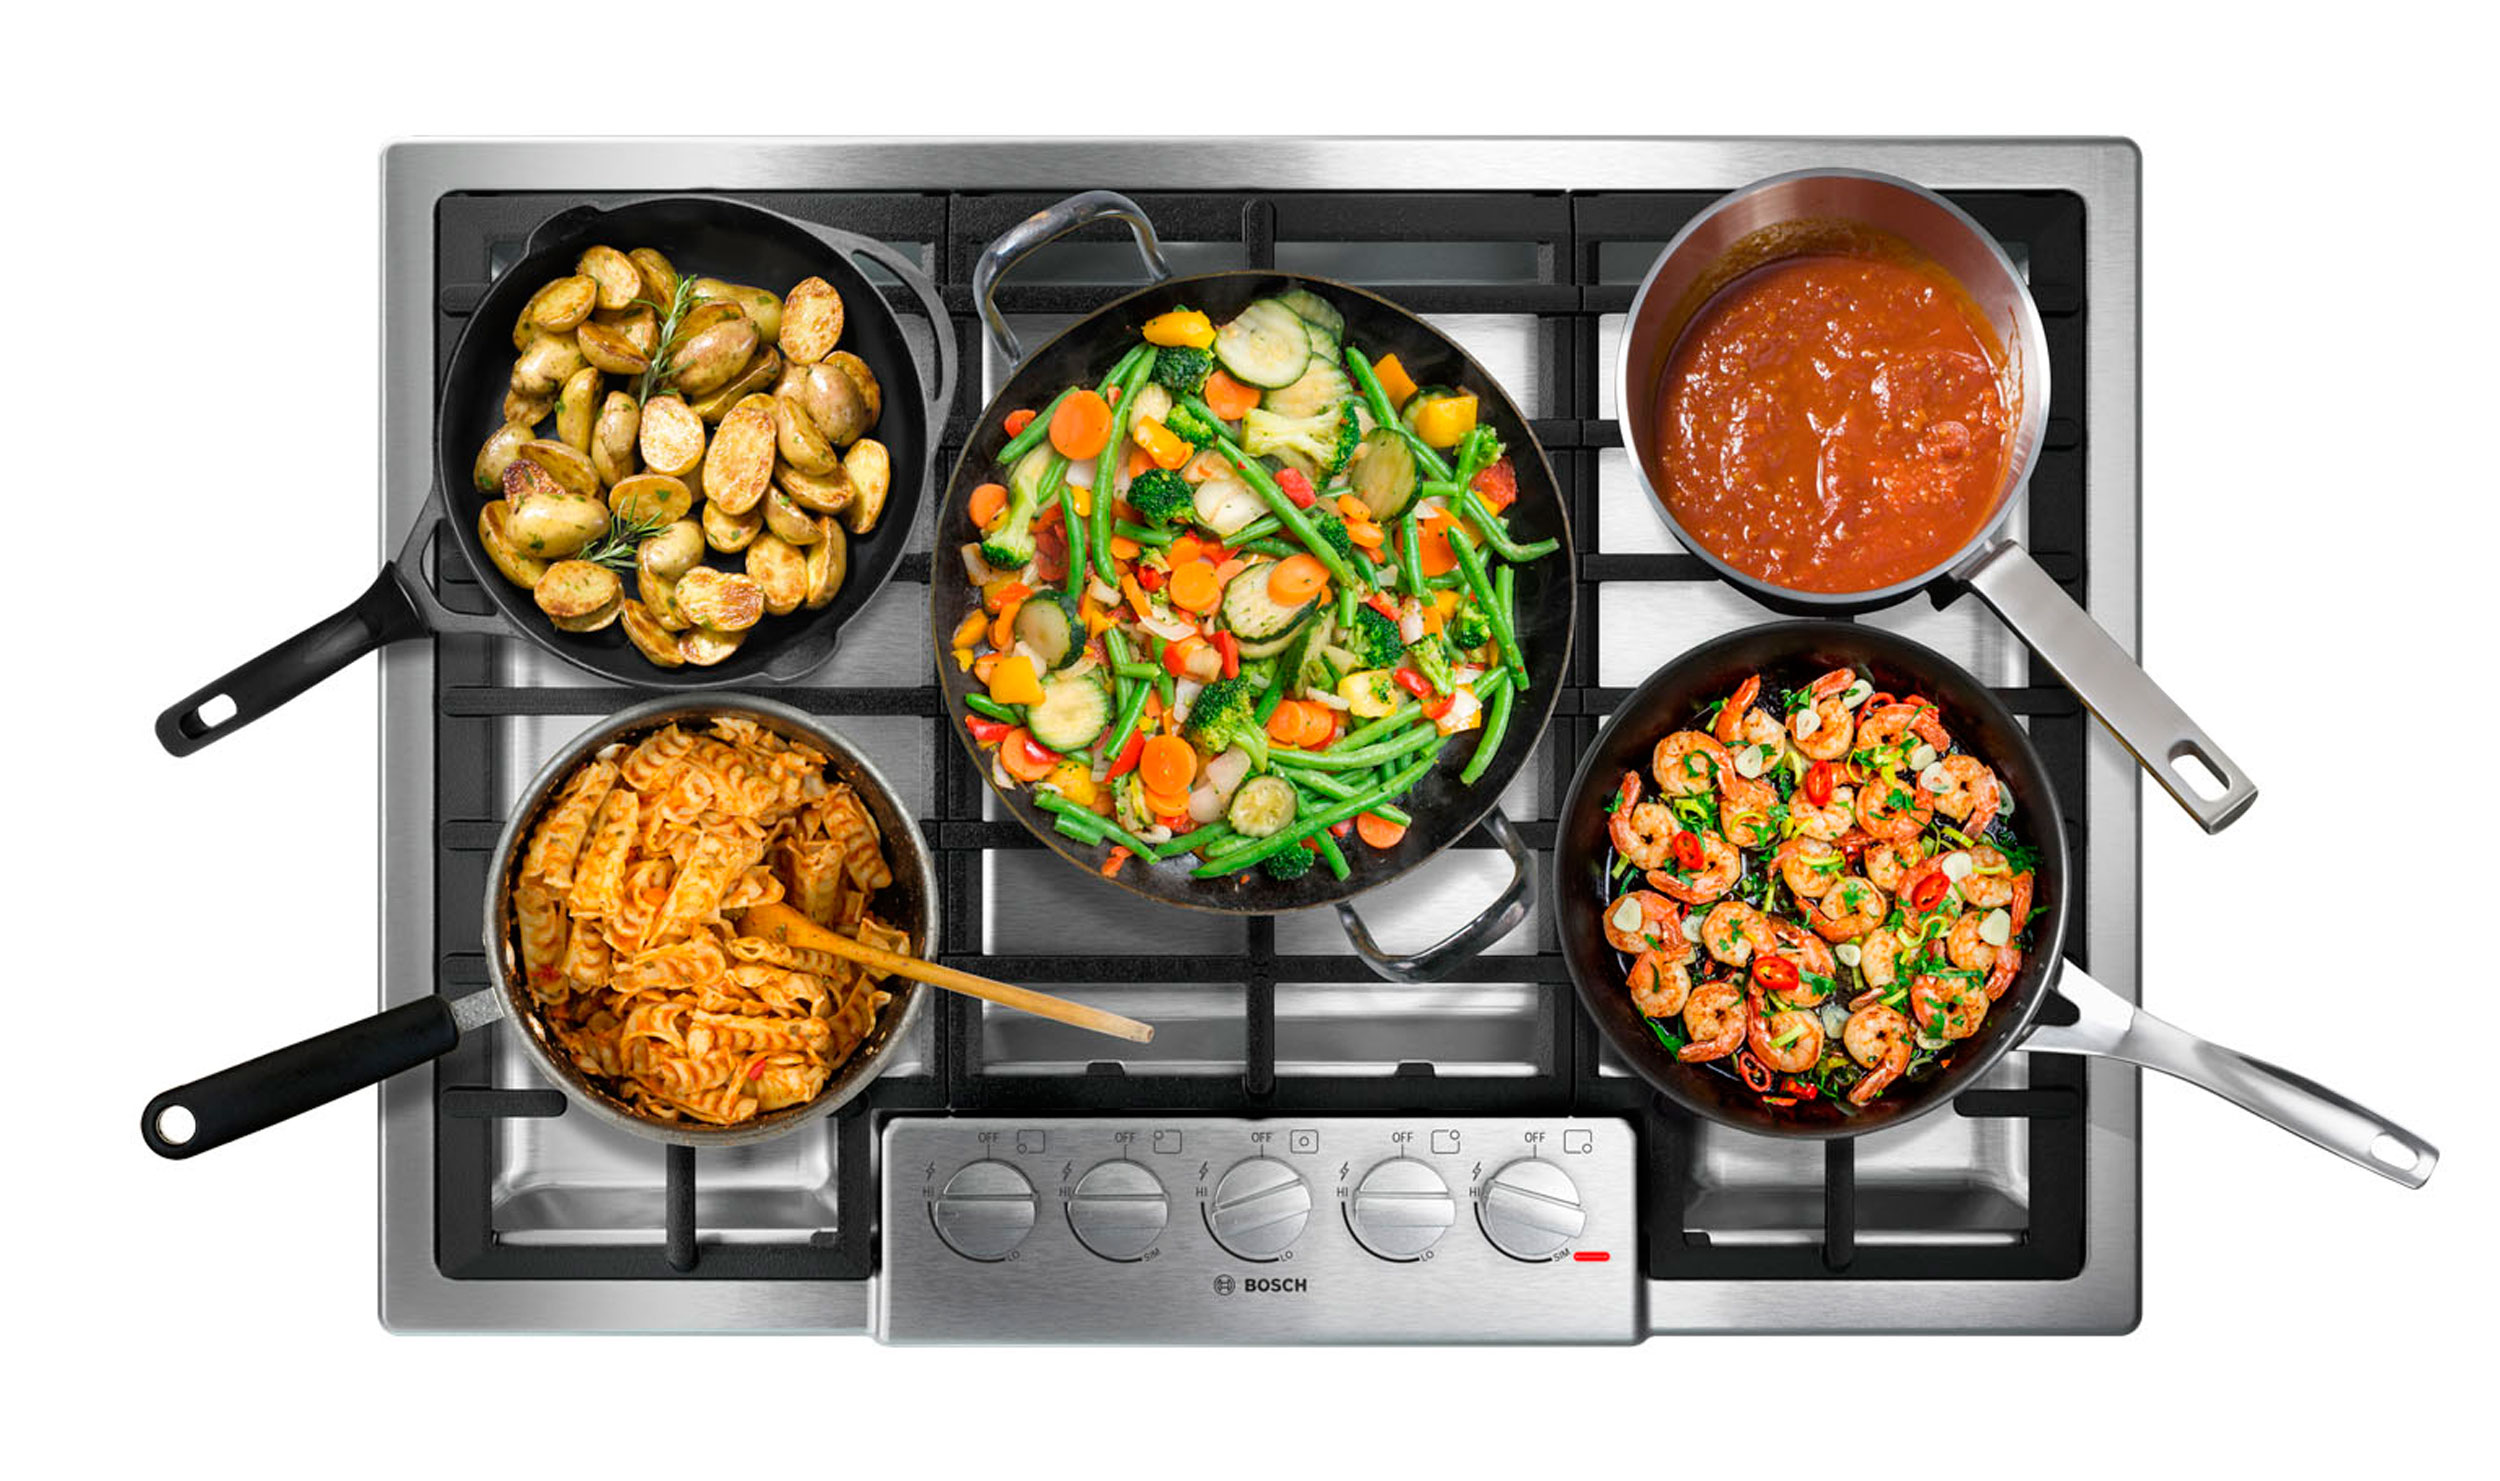 professional cgi photo of stove with pans of food